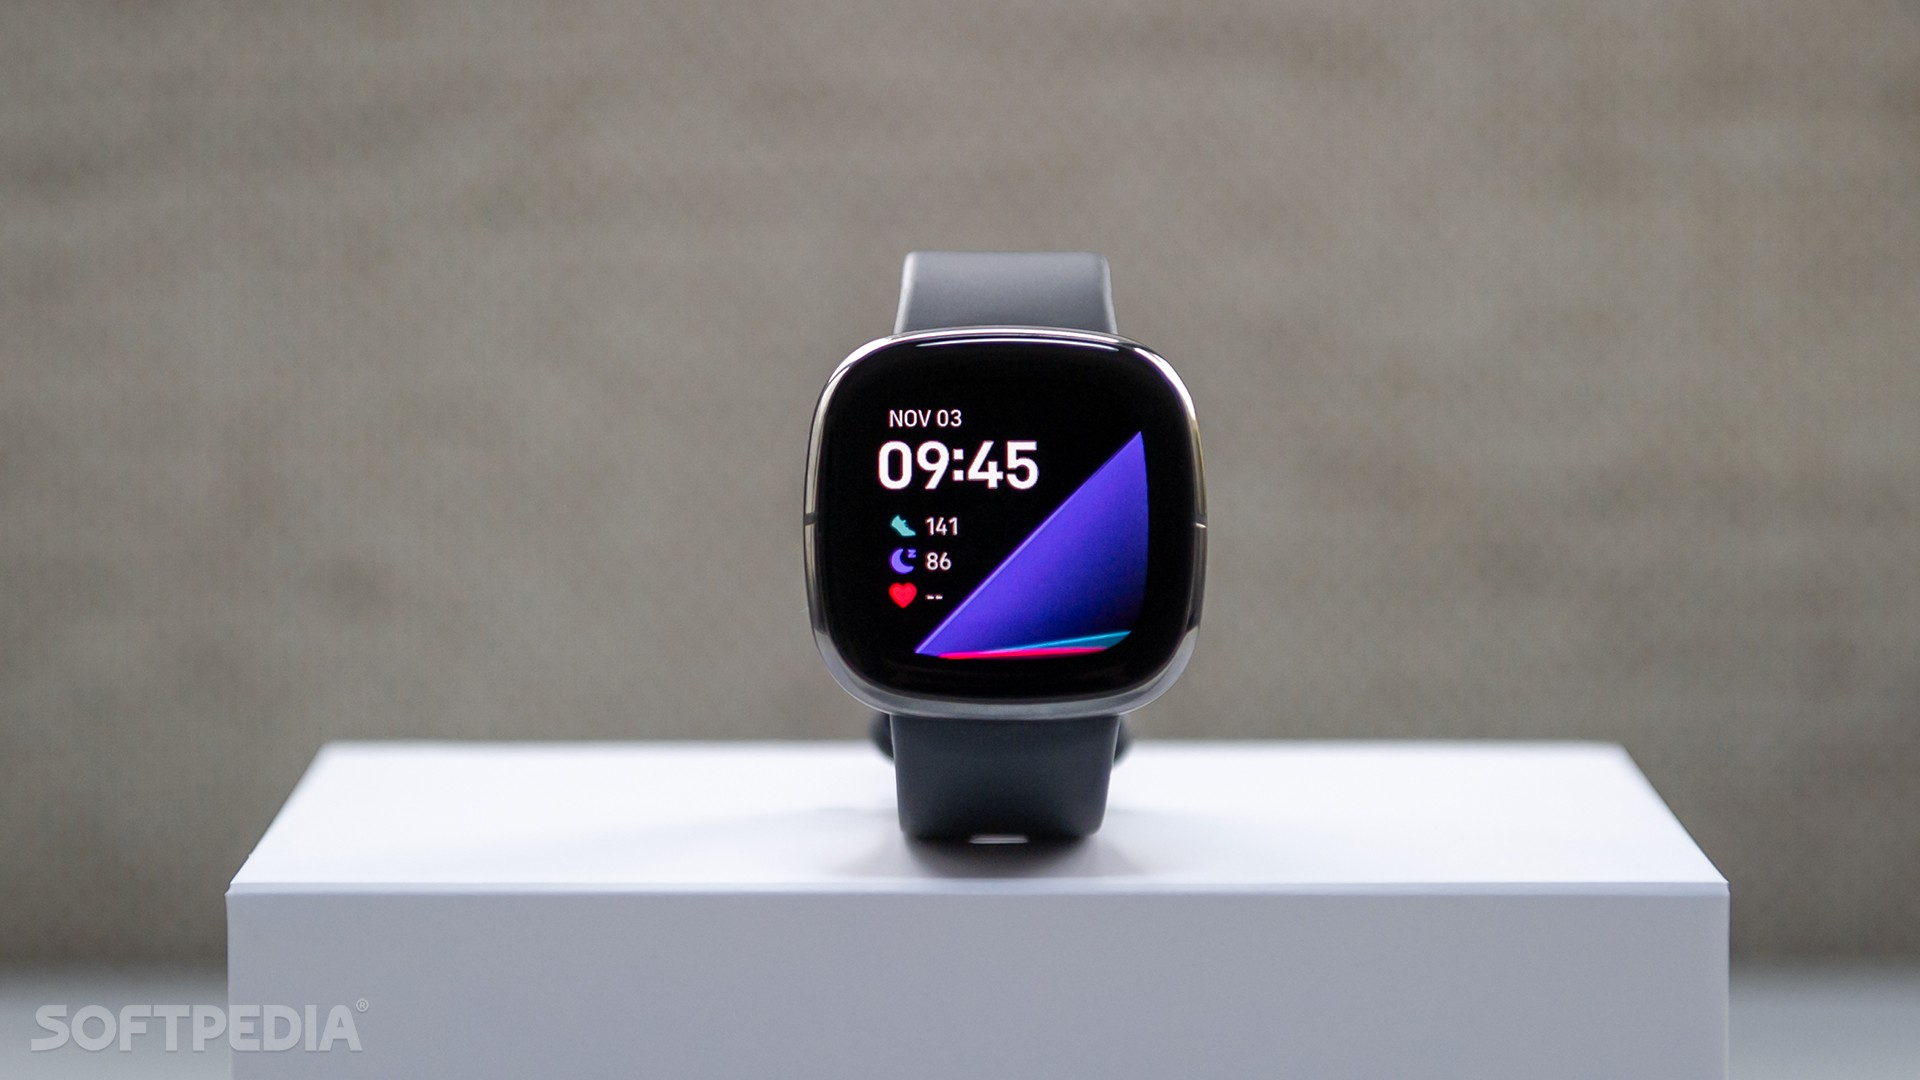 The all-new Fitbit Sense